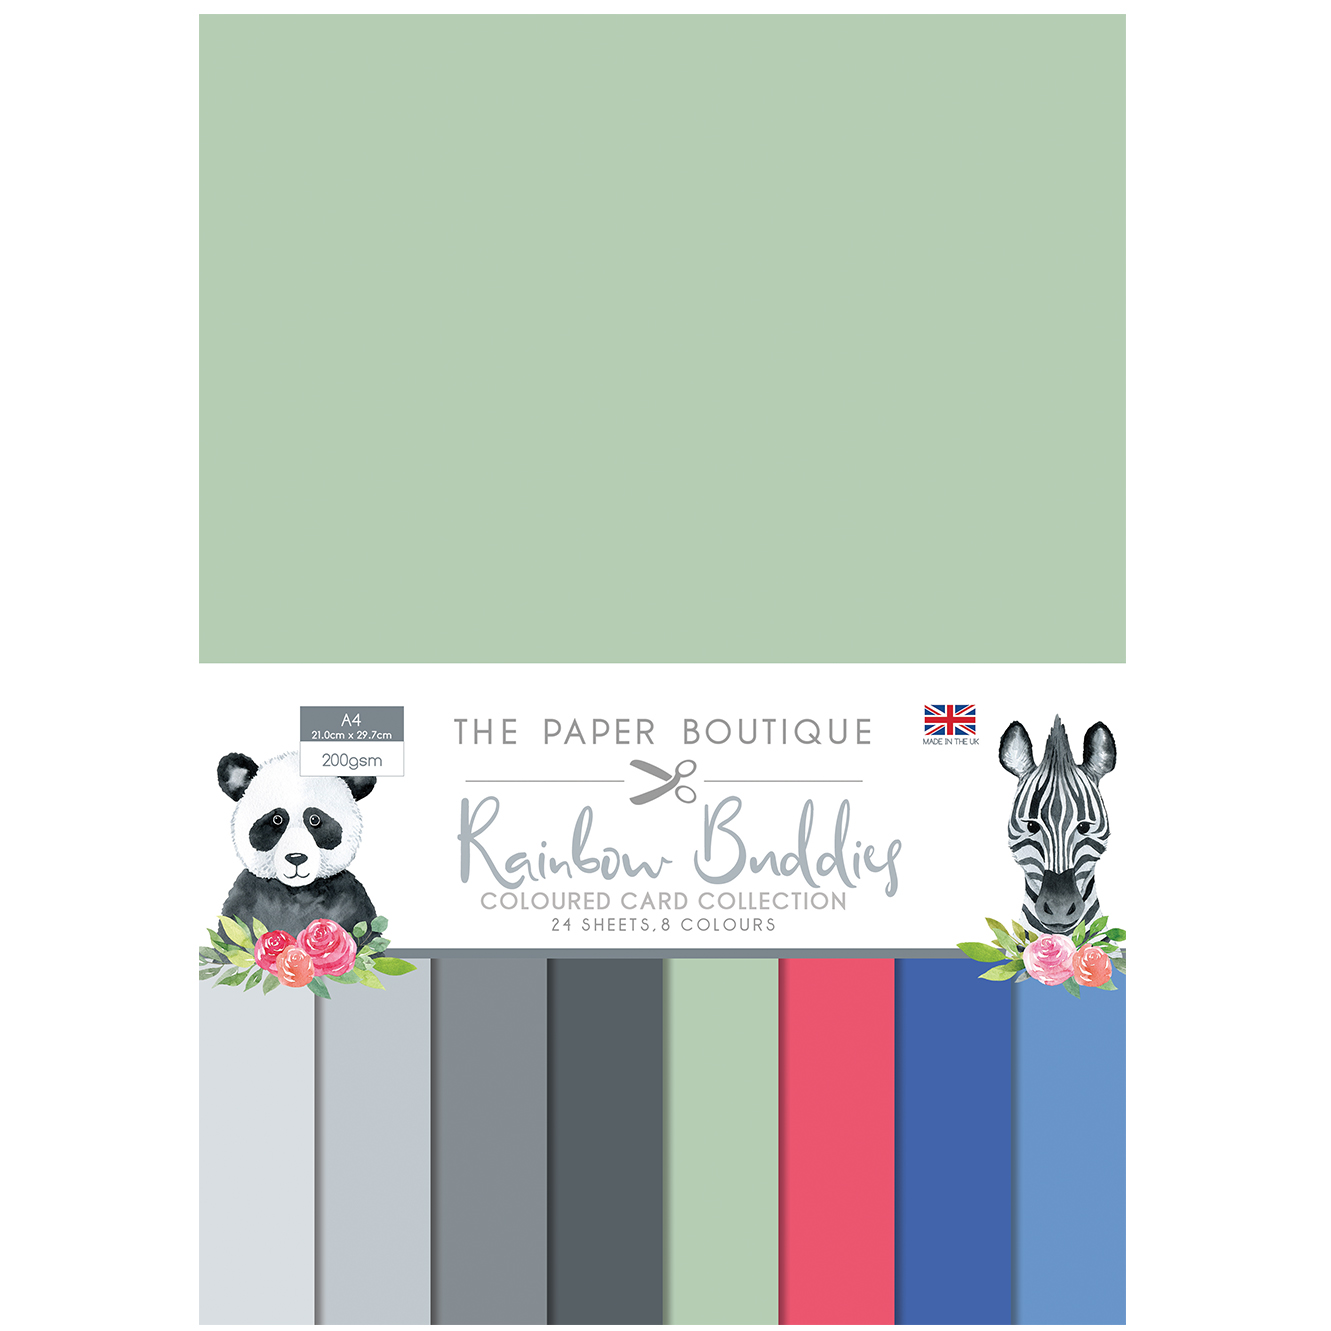 The Paper Boutique Rainbow Buddies Coloured Card Collection